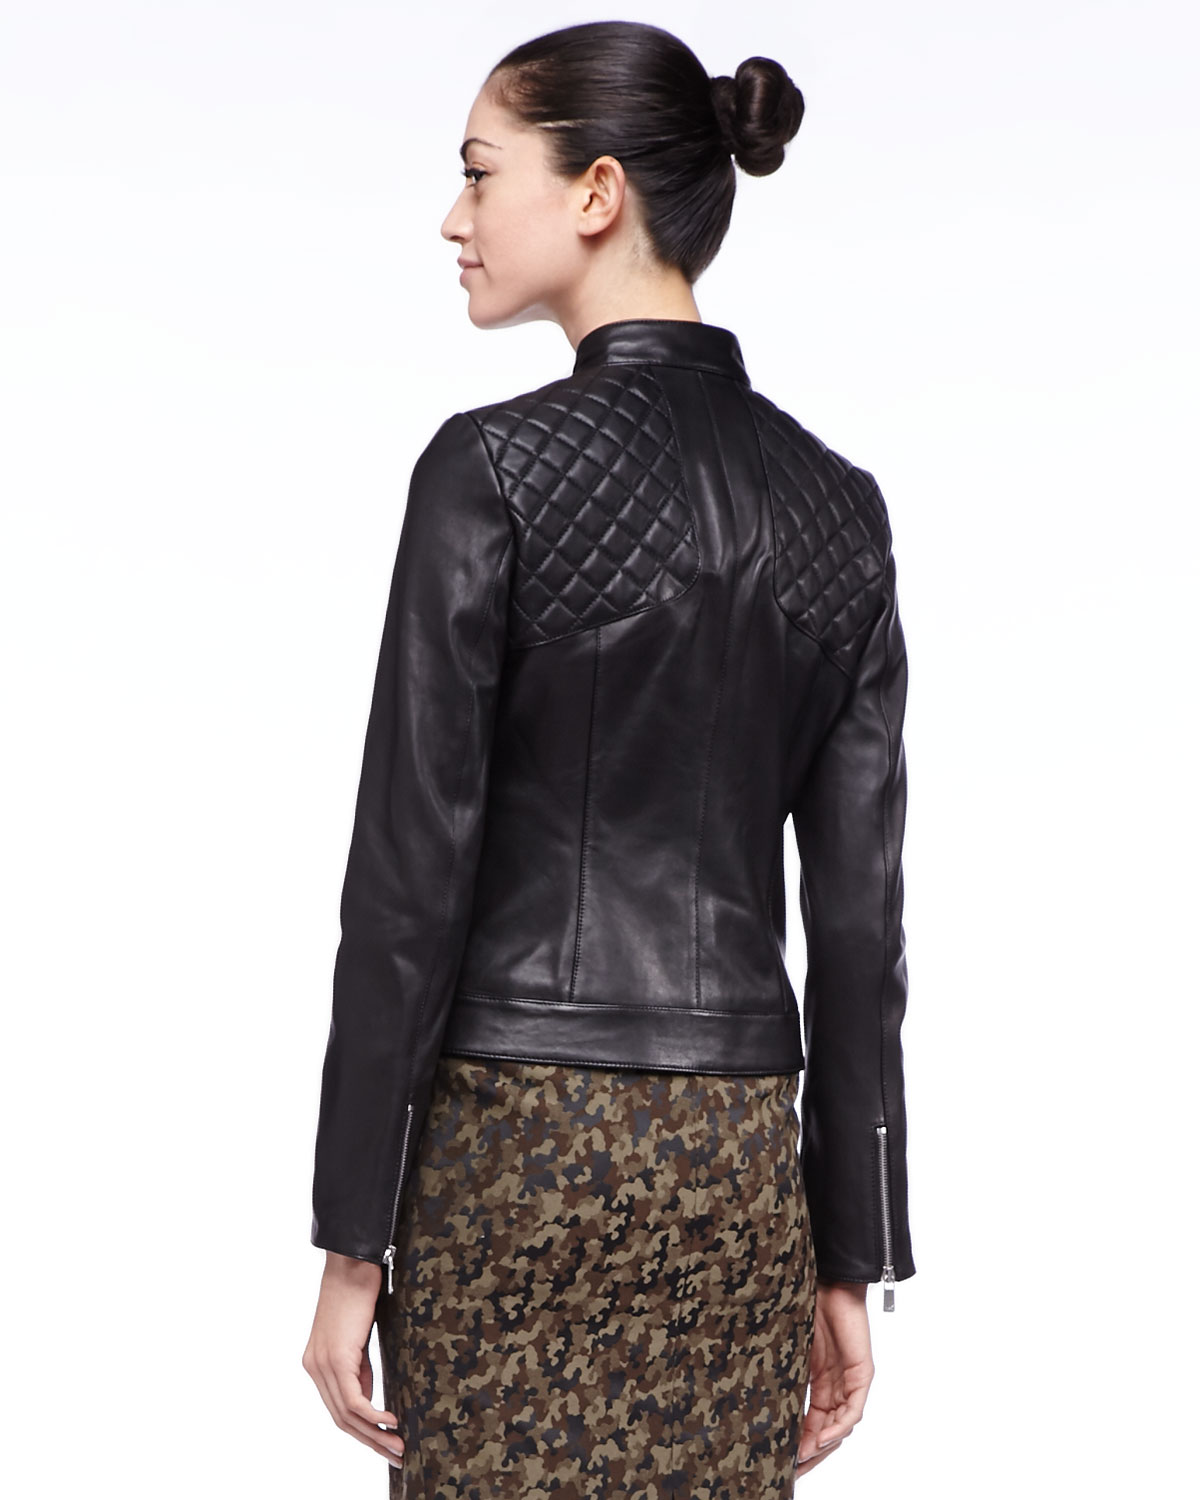 Michael kors Quilted Leather Jacket in Black | Lyst